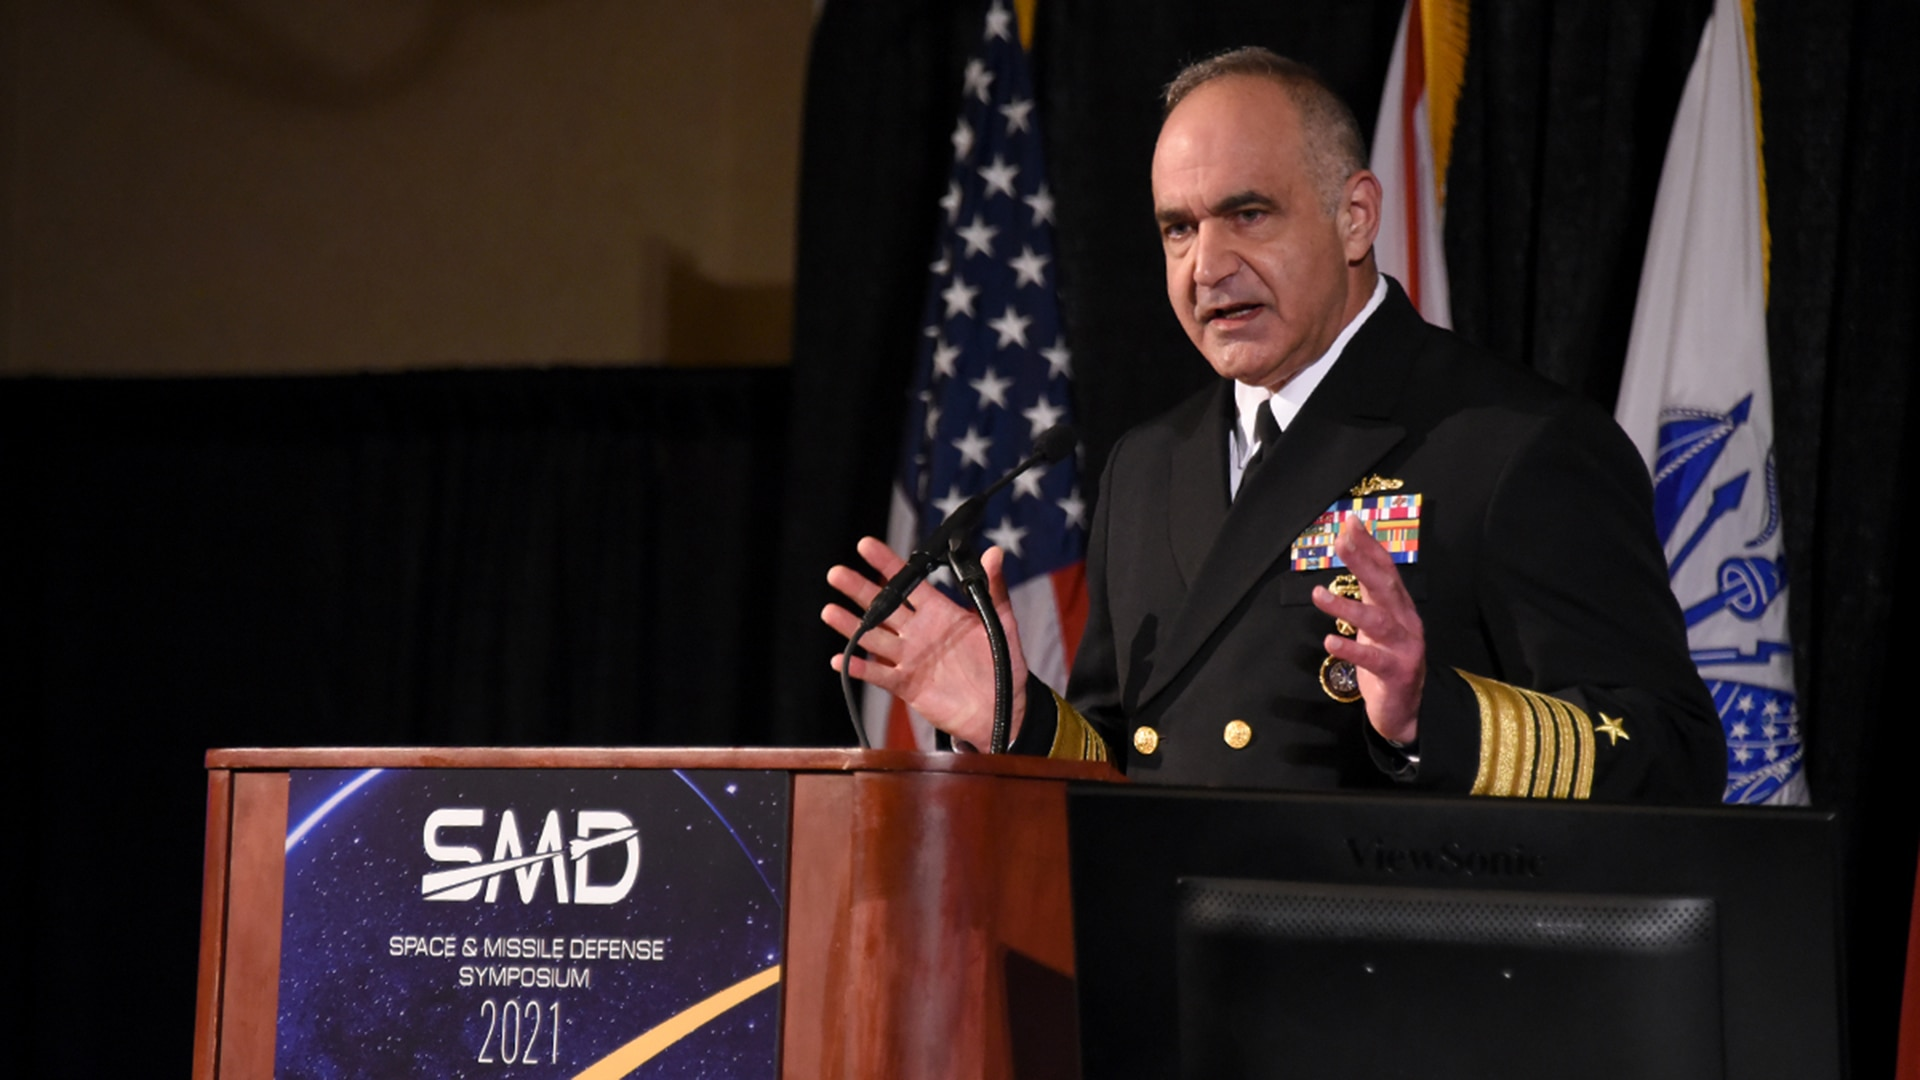 """U.S. Navy Adm. Charles """"Chas"""" A. Richard, commander of U.S. Strategic Command (USSTRATCOM), provides remarks during the 24th annual Space and Missile Defense Symposium at the Von Braun Center in Huntsville, Alabama, Aug. 12. """"We have to maintain strategic deterrence in all domains, utilizing all of the elements of our national power. We need to define the larger whole of integrated deterrence and how each of our parts fit into it,"""" Richard said. As a global warfighting combatant command, USSTRATCOM delivers a dominant strategic force and innovative team to maintain our Nation's enduring strength, prevent and prevail in great power conflict, and grow the intellectual capital to forge 21st century strategic deterrence. (U.S. Navy photo by CAPT Ron Flanders)"""